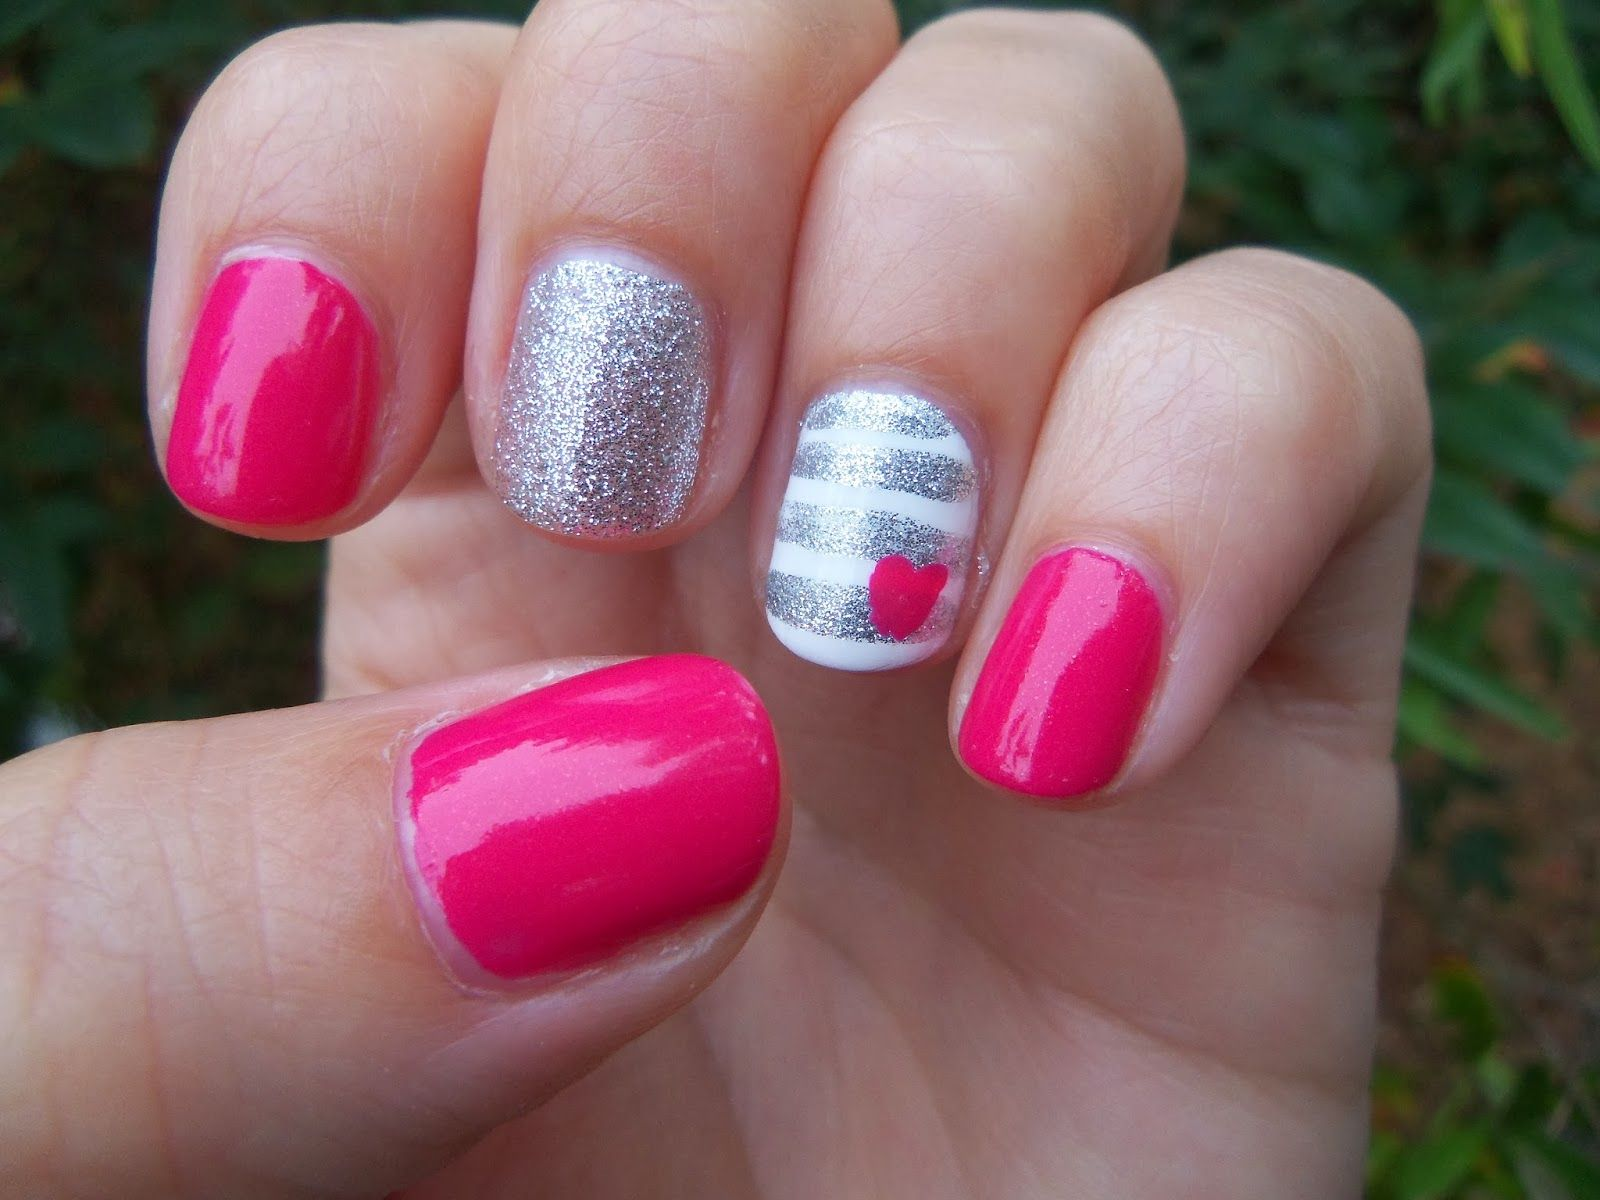 pinheather banks on nail obsession | pinterest | kid nails